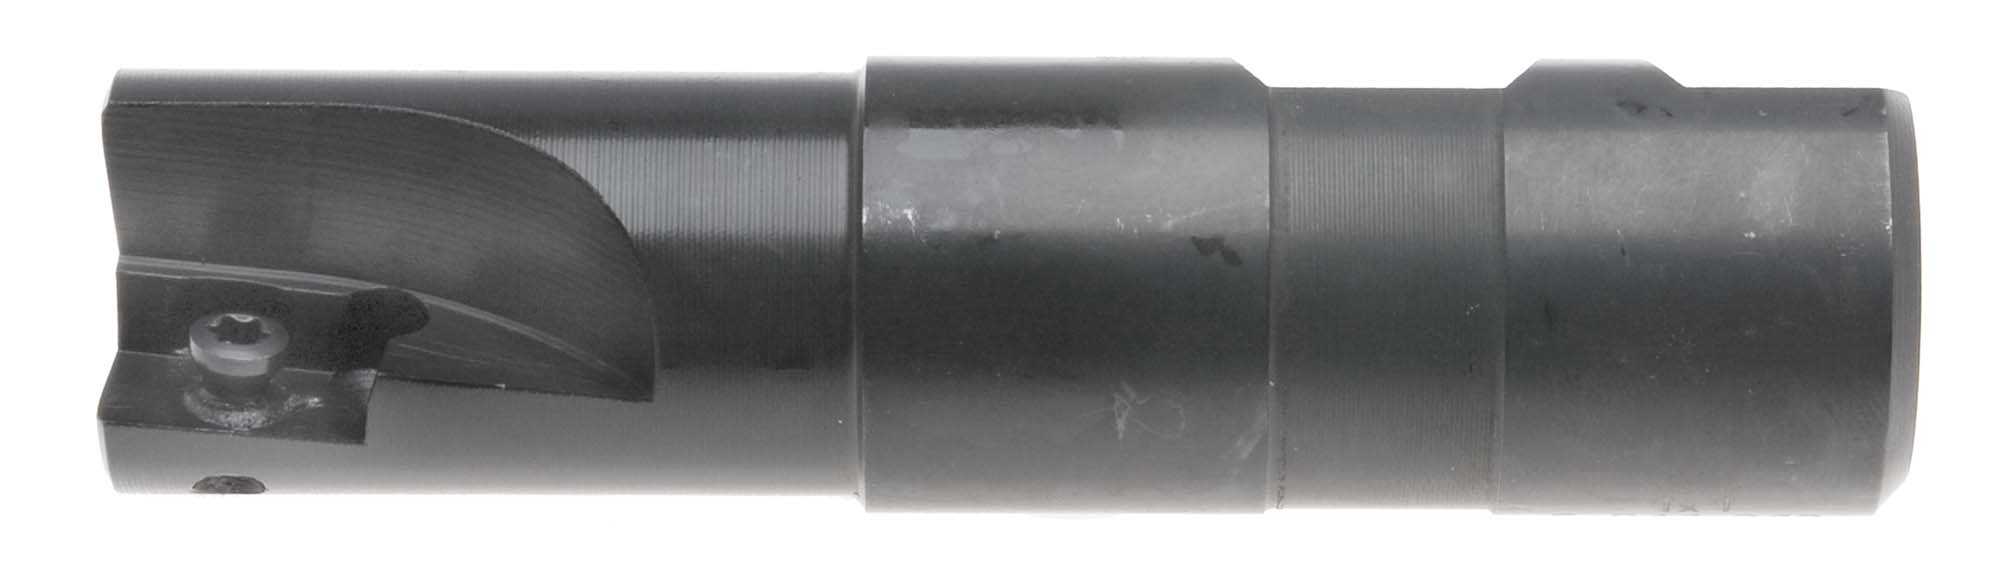 "TMX 6-941-115  1-1/2"" APKT Indexable End Mill"